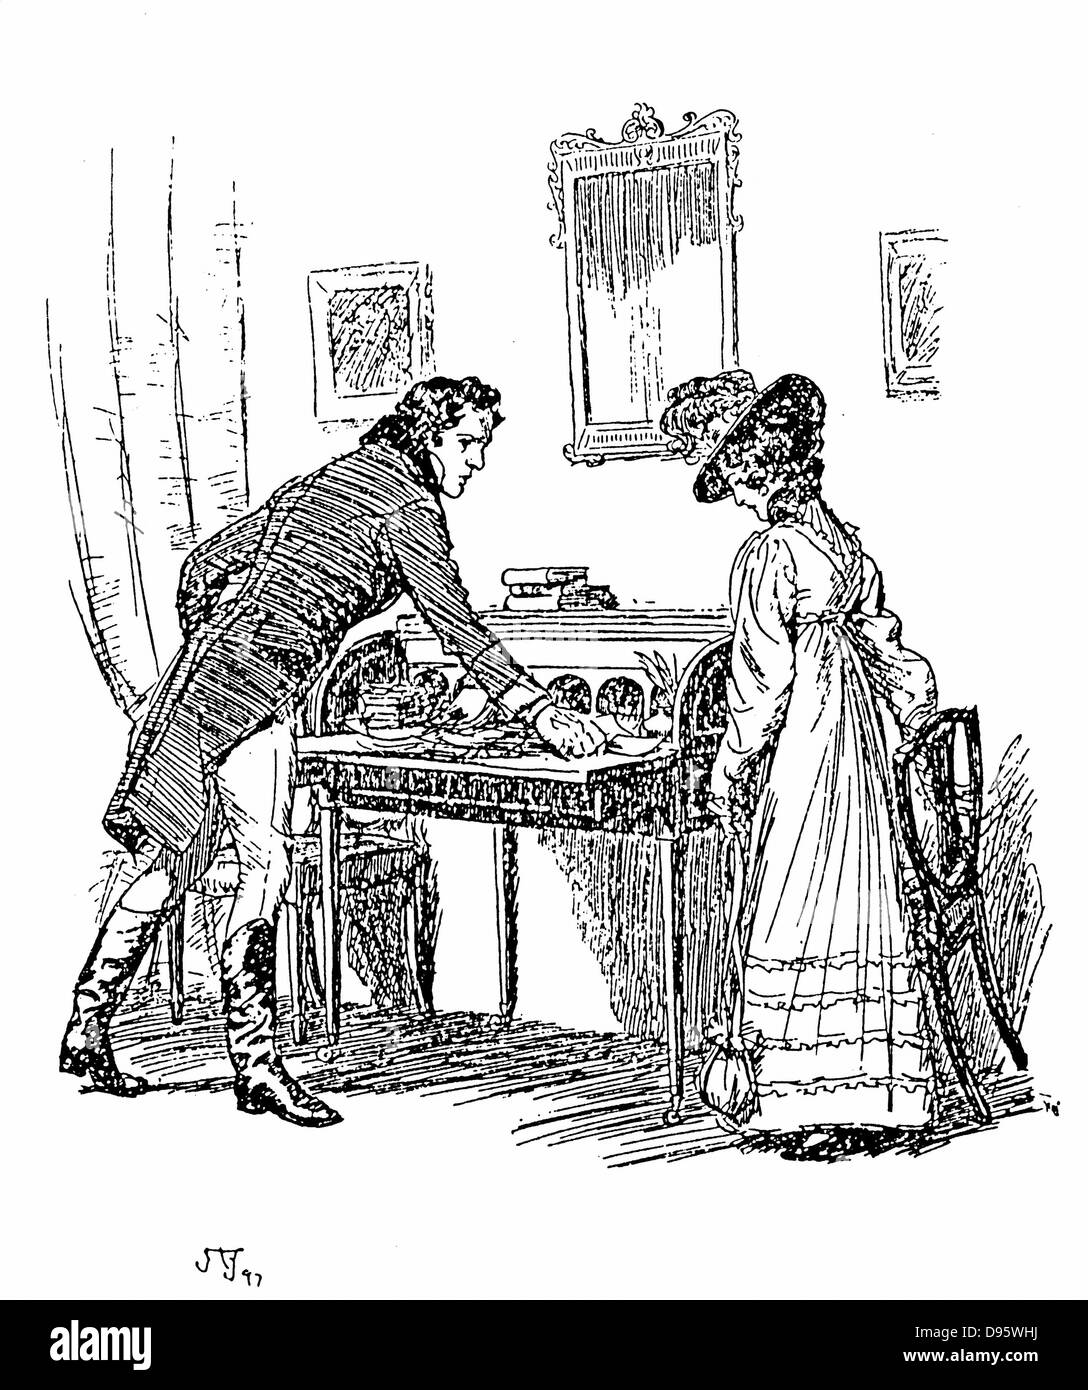 Jane Austen 'Persuasion'. Austen's last novel published 1818. Captain Wentworth giving Anne Elliot his - Stock Image